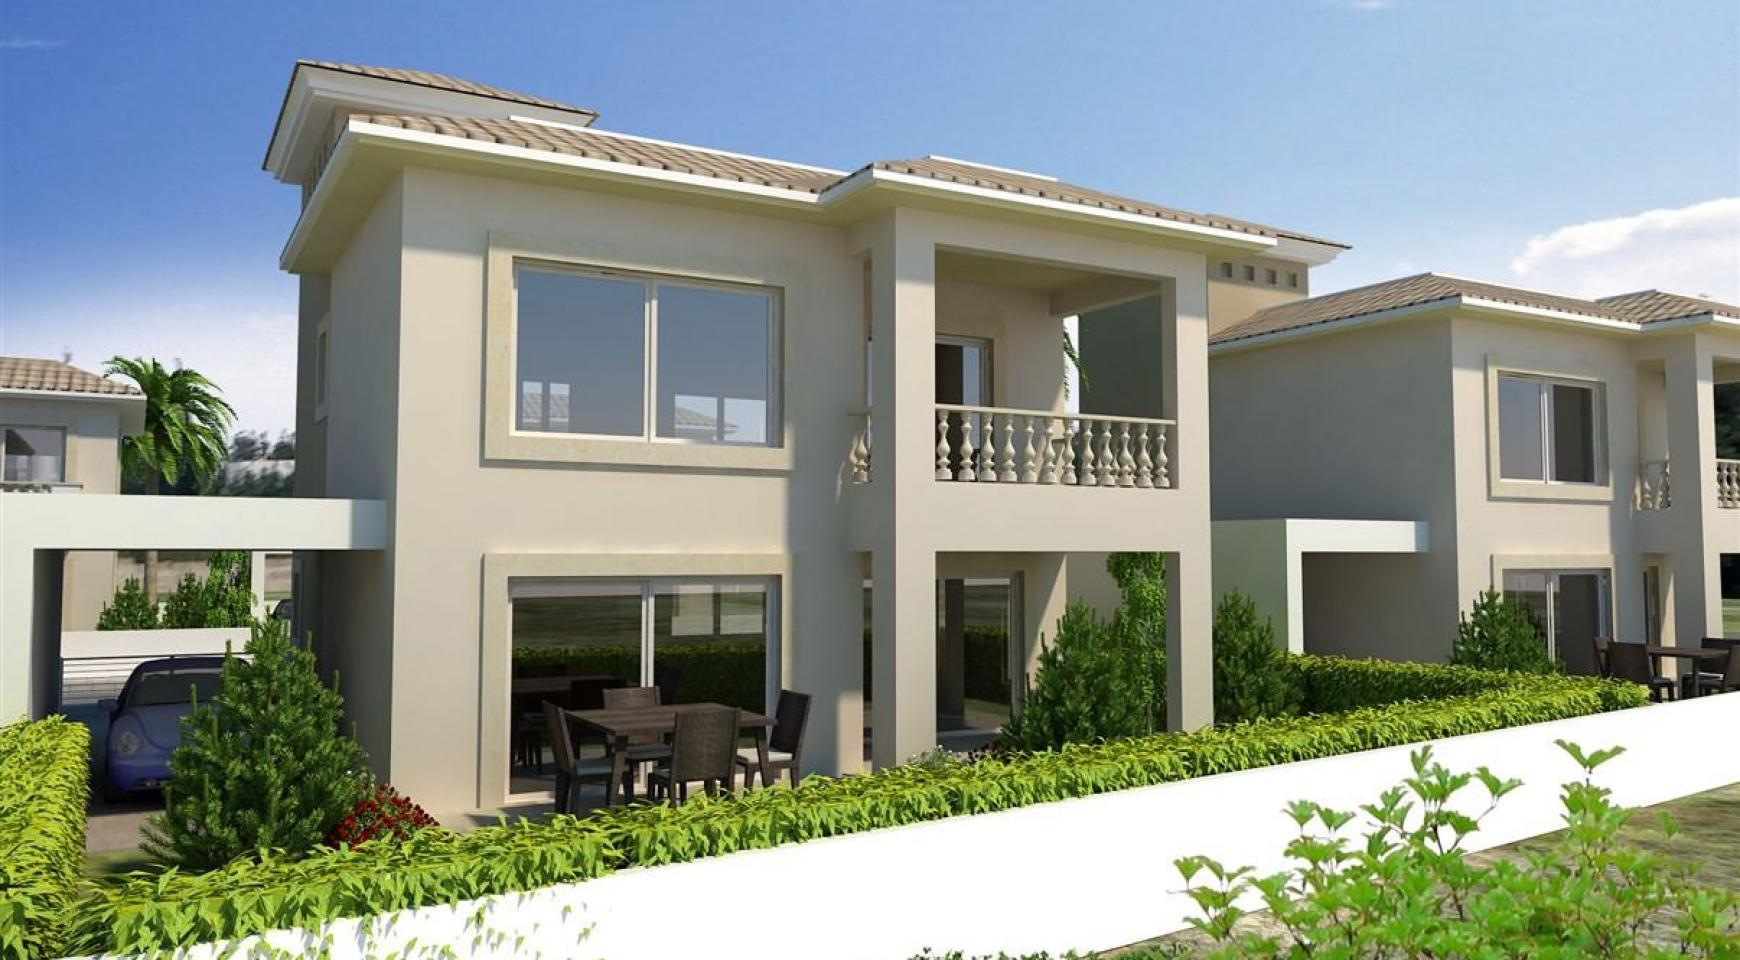 3 Bedroom Villa in New Project in Paphos - 18